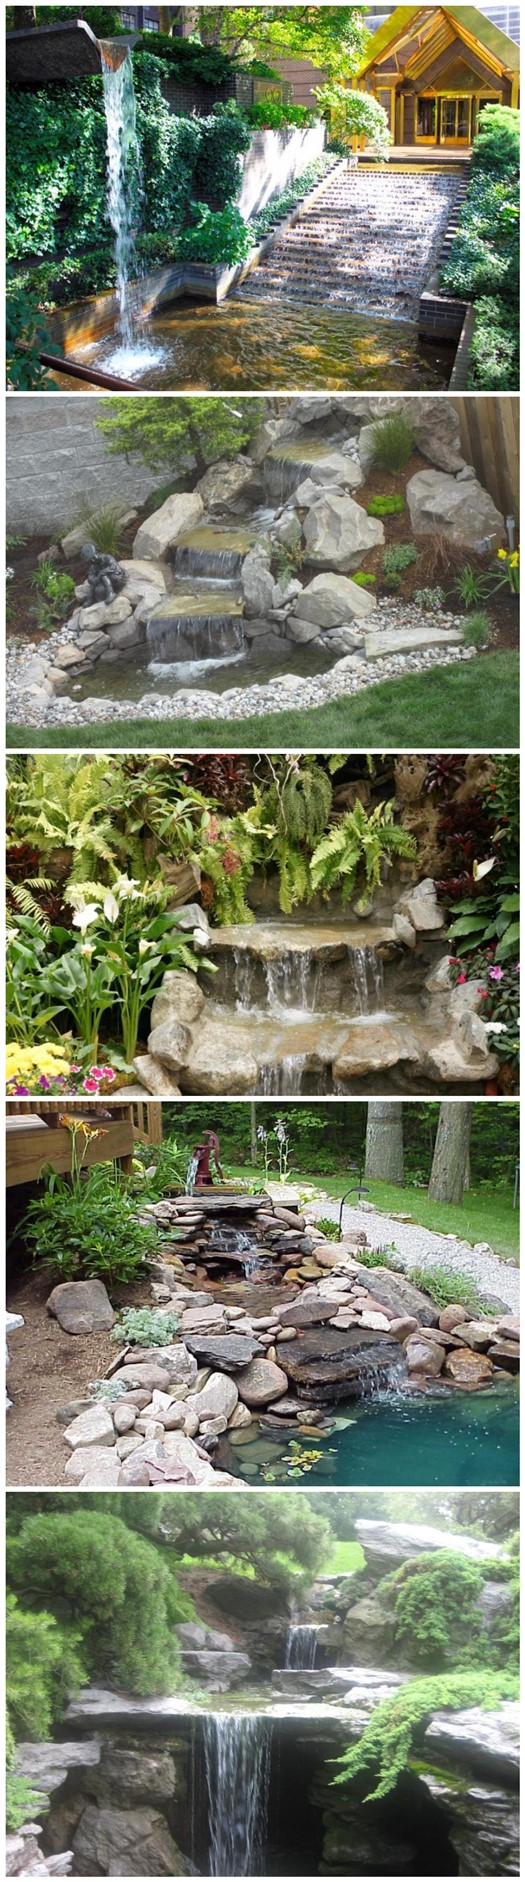 How To Build A Garden Waterfall Pond 3 Diy Tag